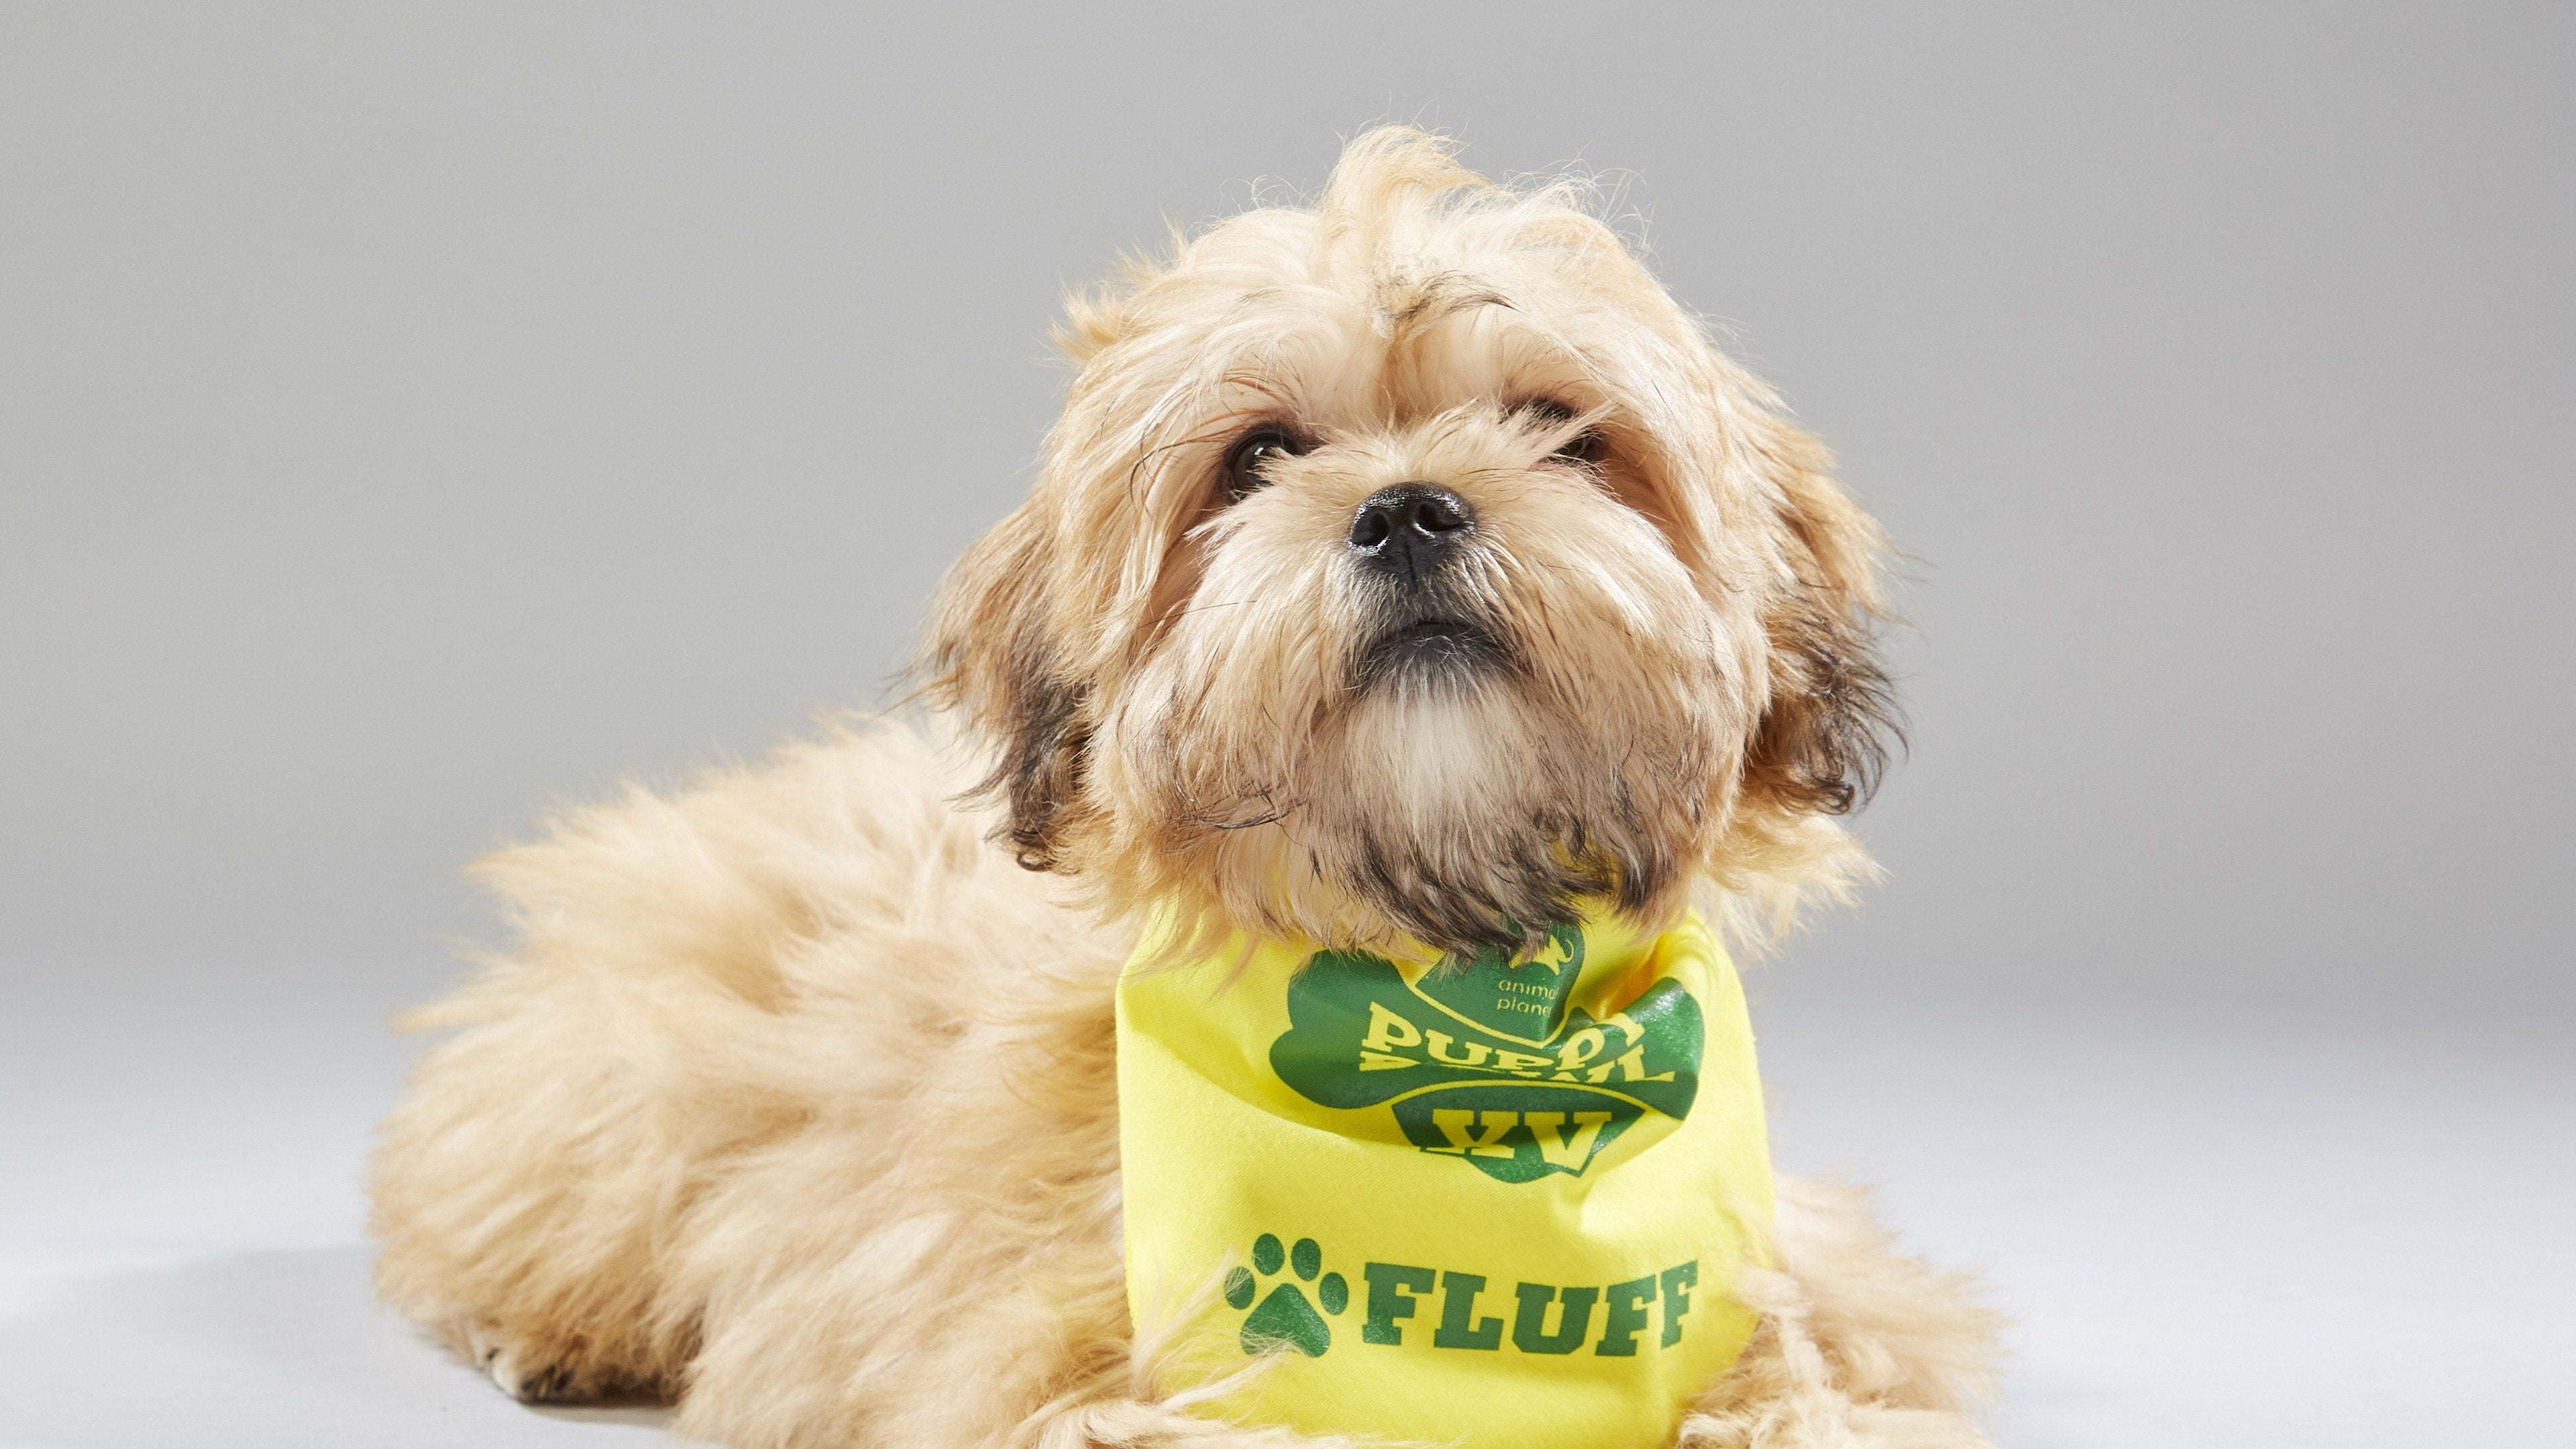 Puppy Bowl XV Presents: Where Are They Now?